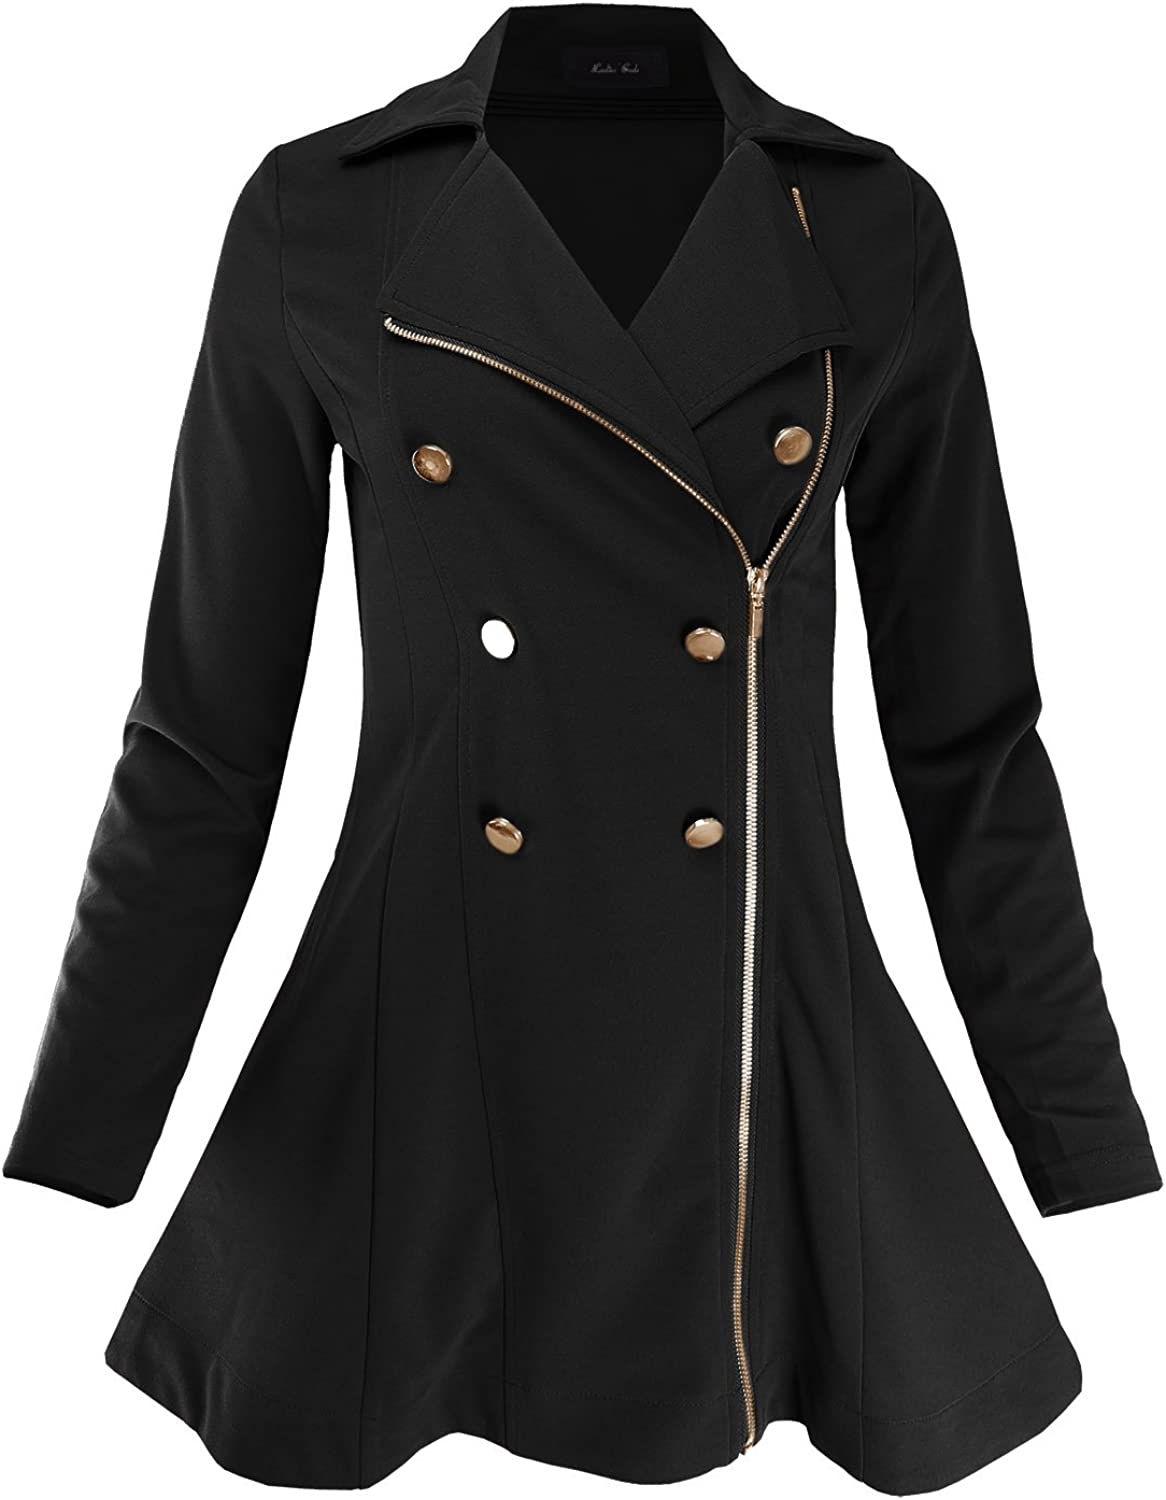 Ladies' Code Women's Double Breasted Zip Up Fit & Flare Peacoat Trenchcoat